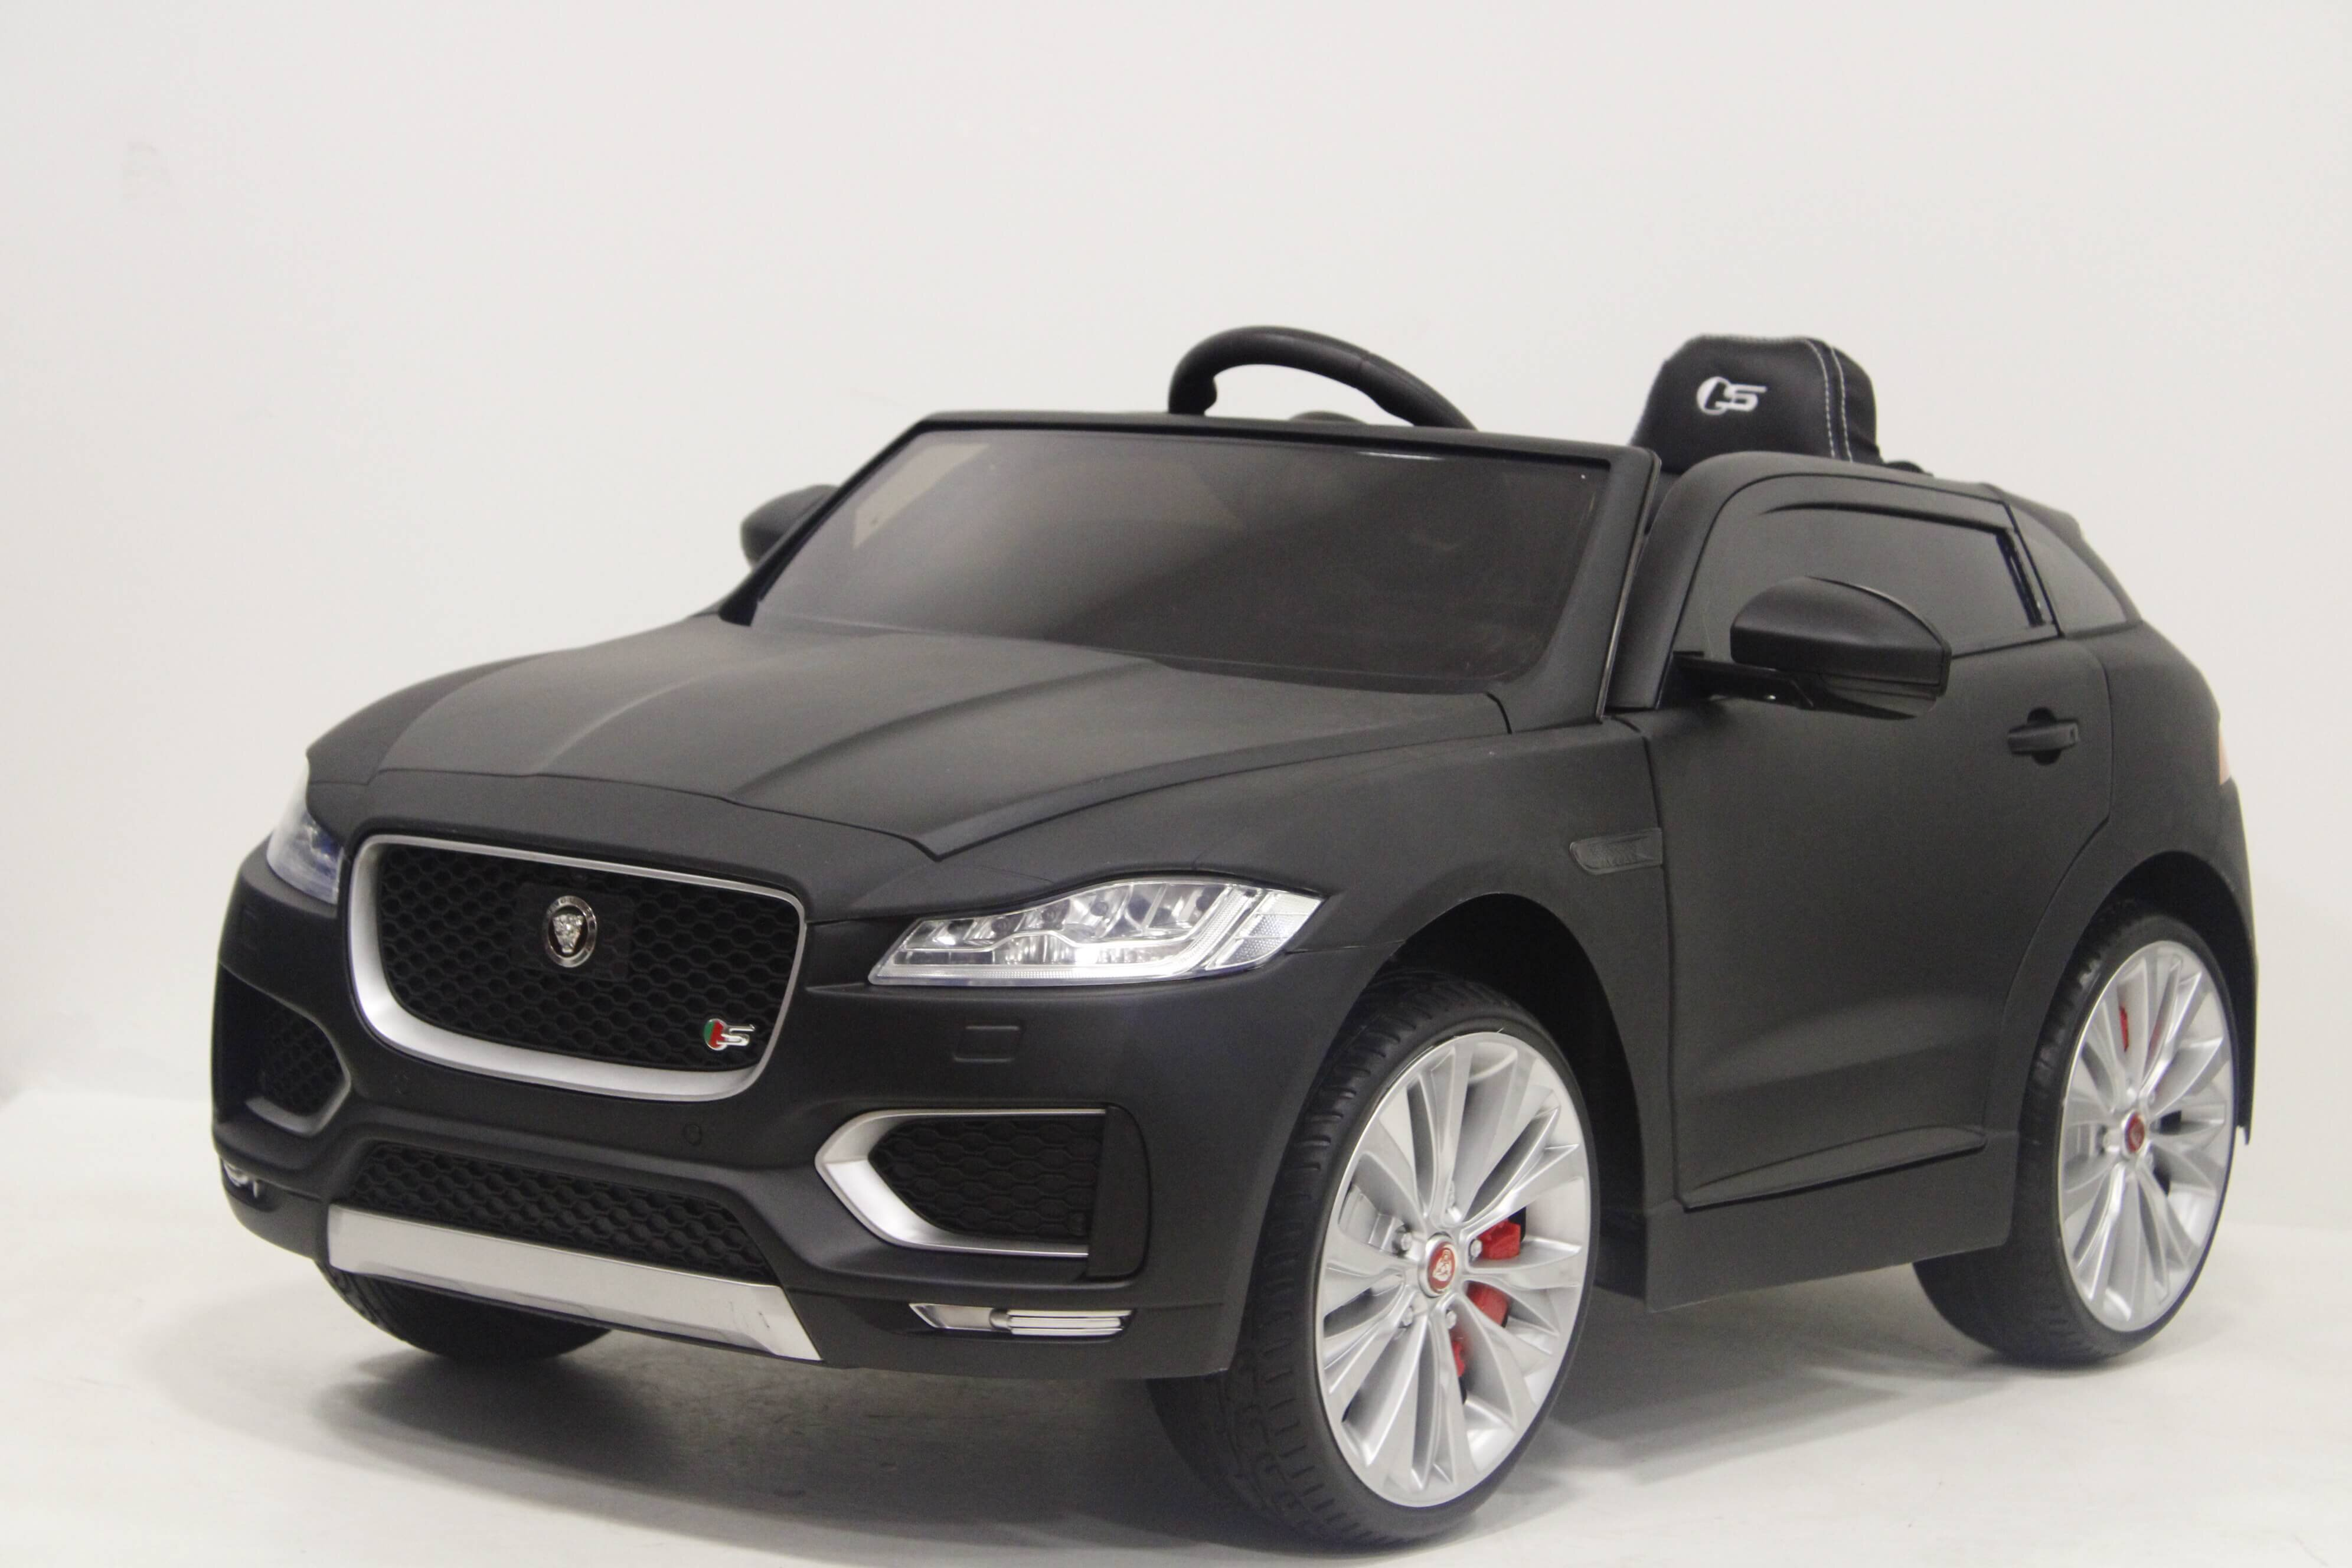 Электромобиль RiverToys JAGUAR F-PACE Black Matt